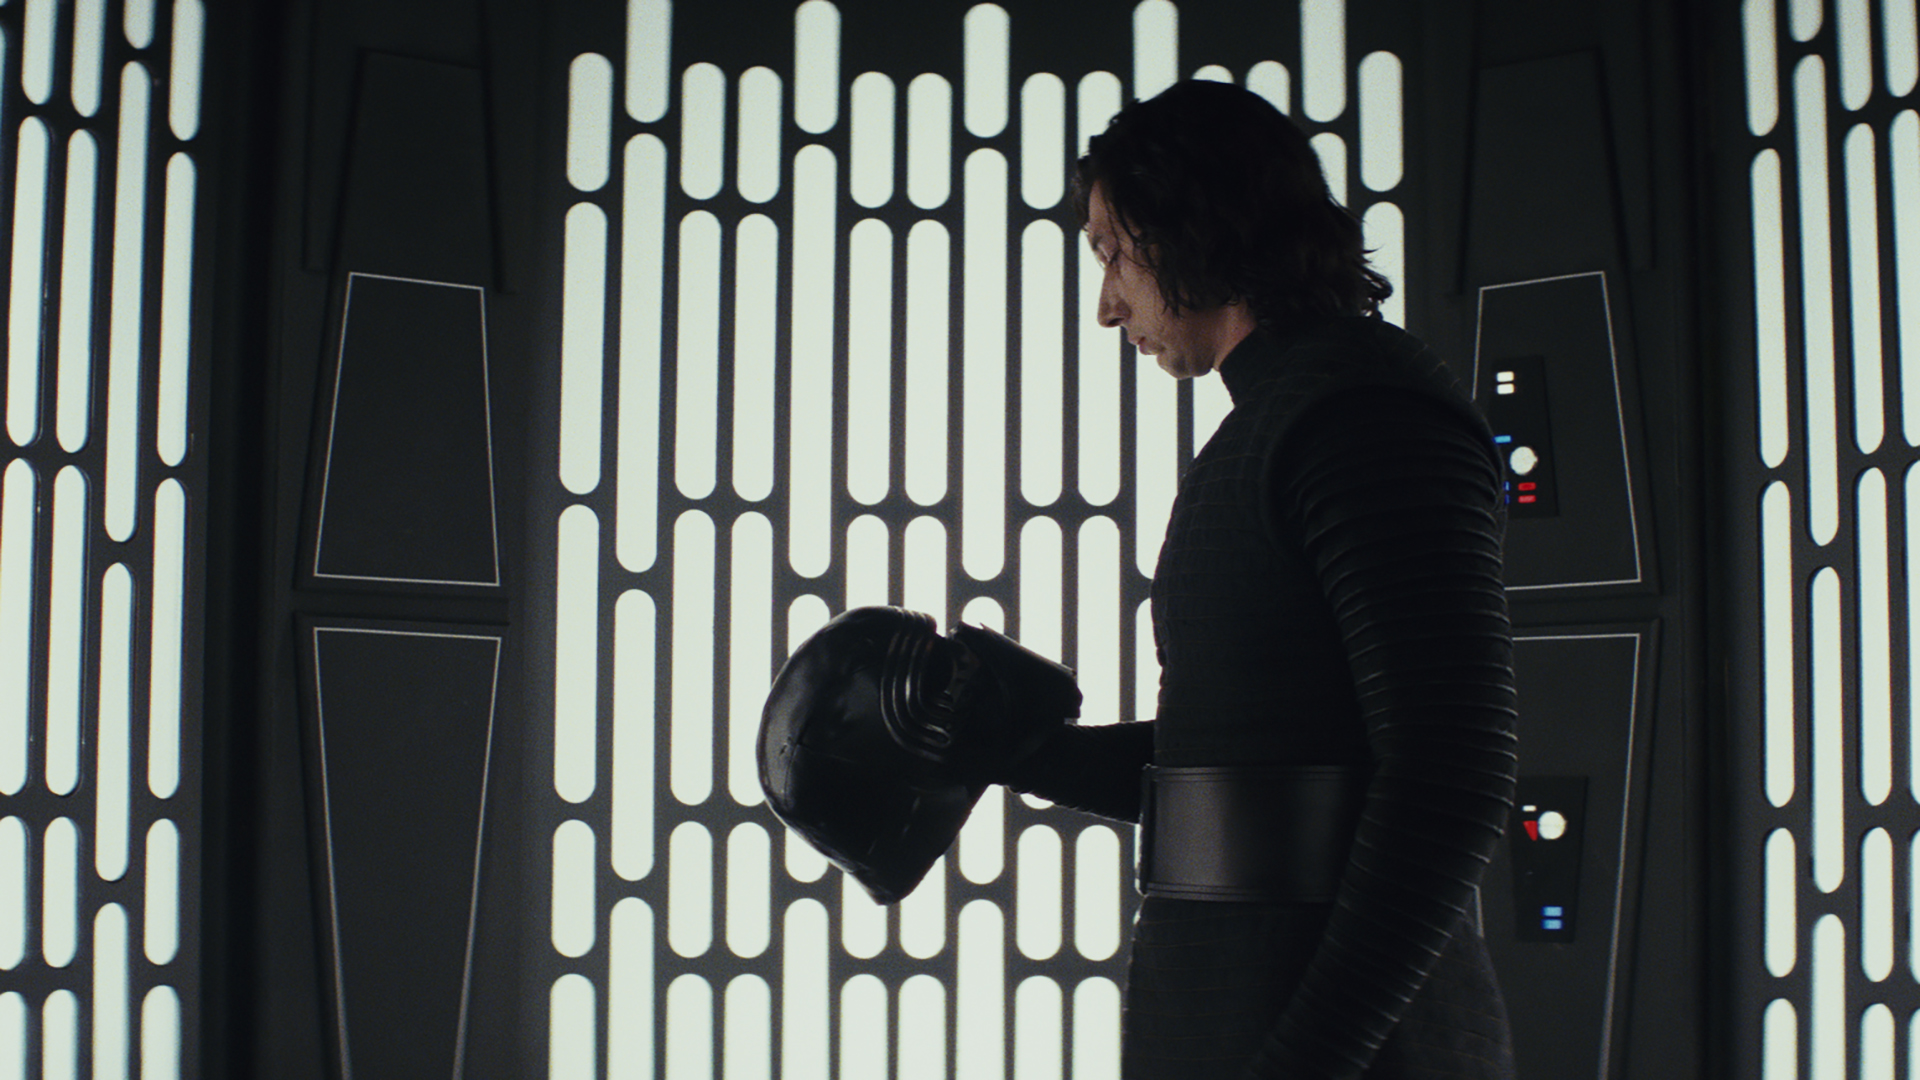 Review: 'Last Jedi' is a fresh, exhilarating new journey for 'Star Wars' fans